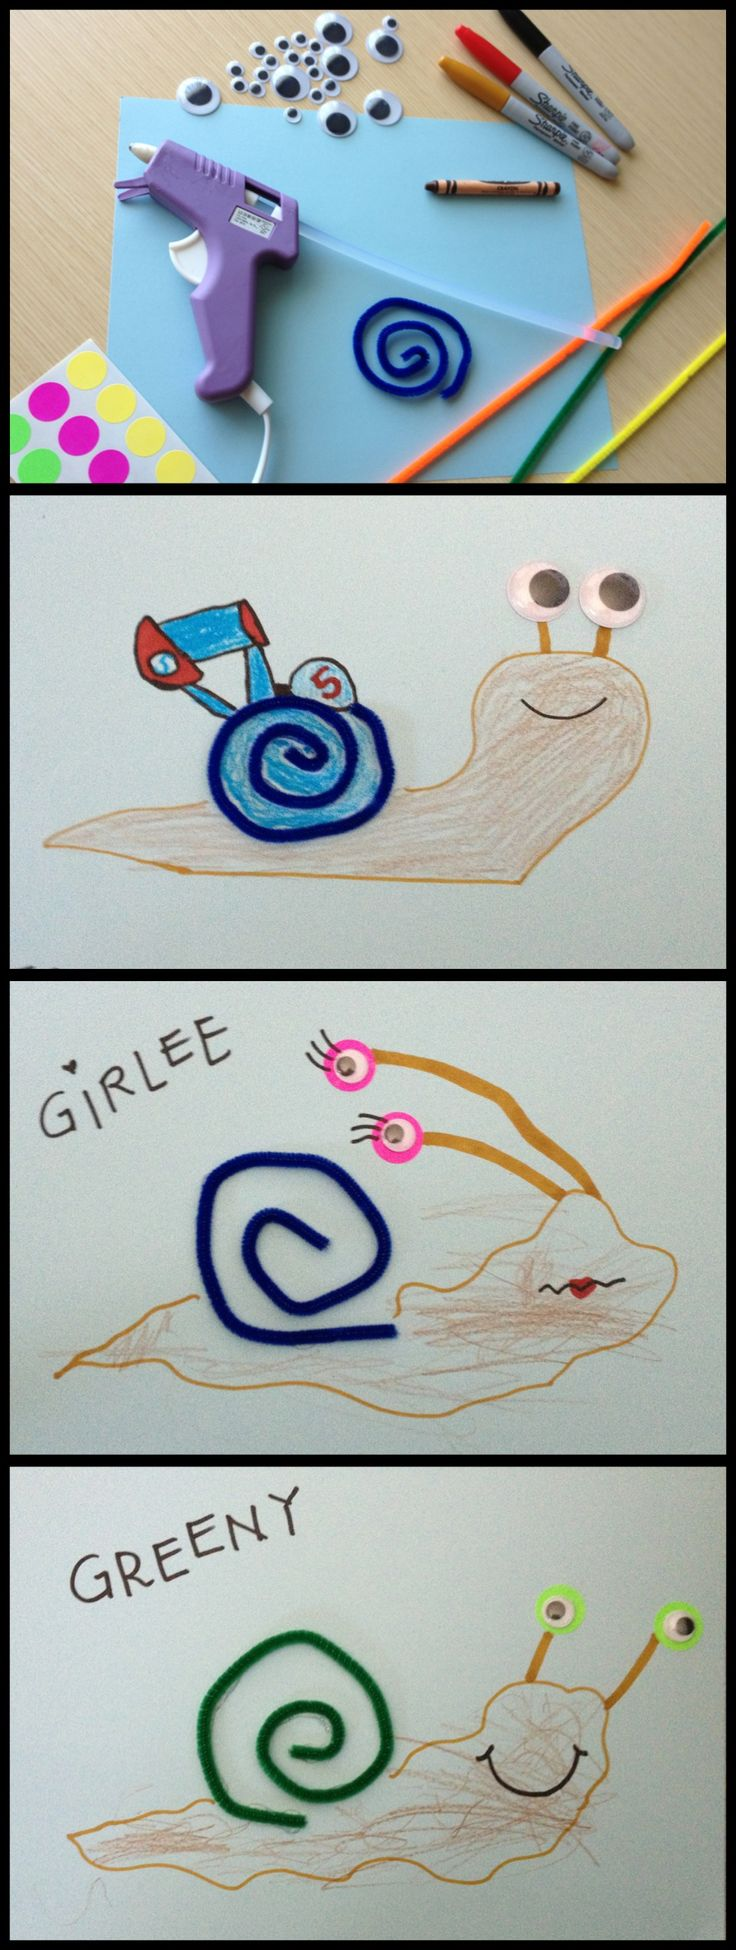 TURBO- snail craft  be creative, let the kids have artistic freedom, don't forget to name your snail friend!